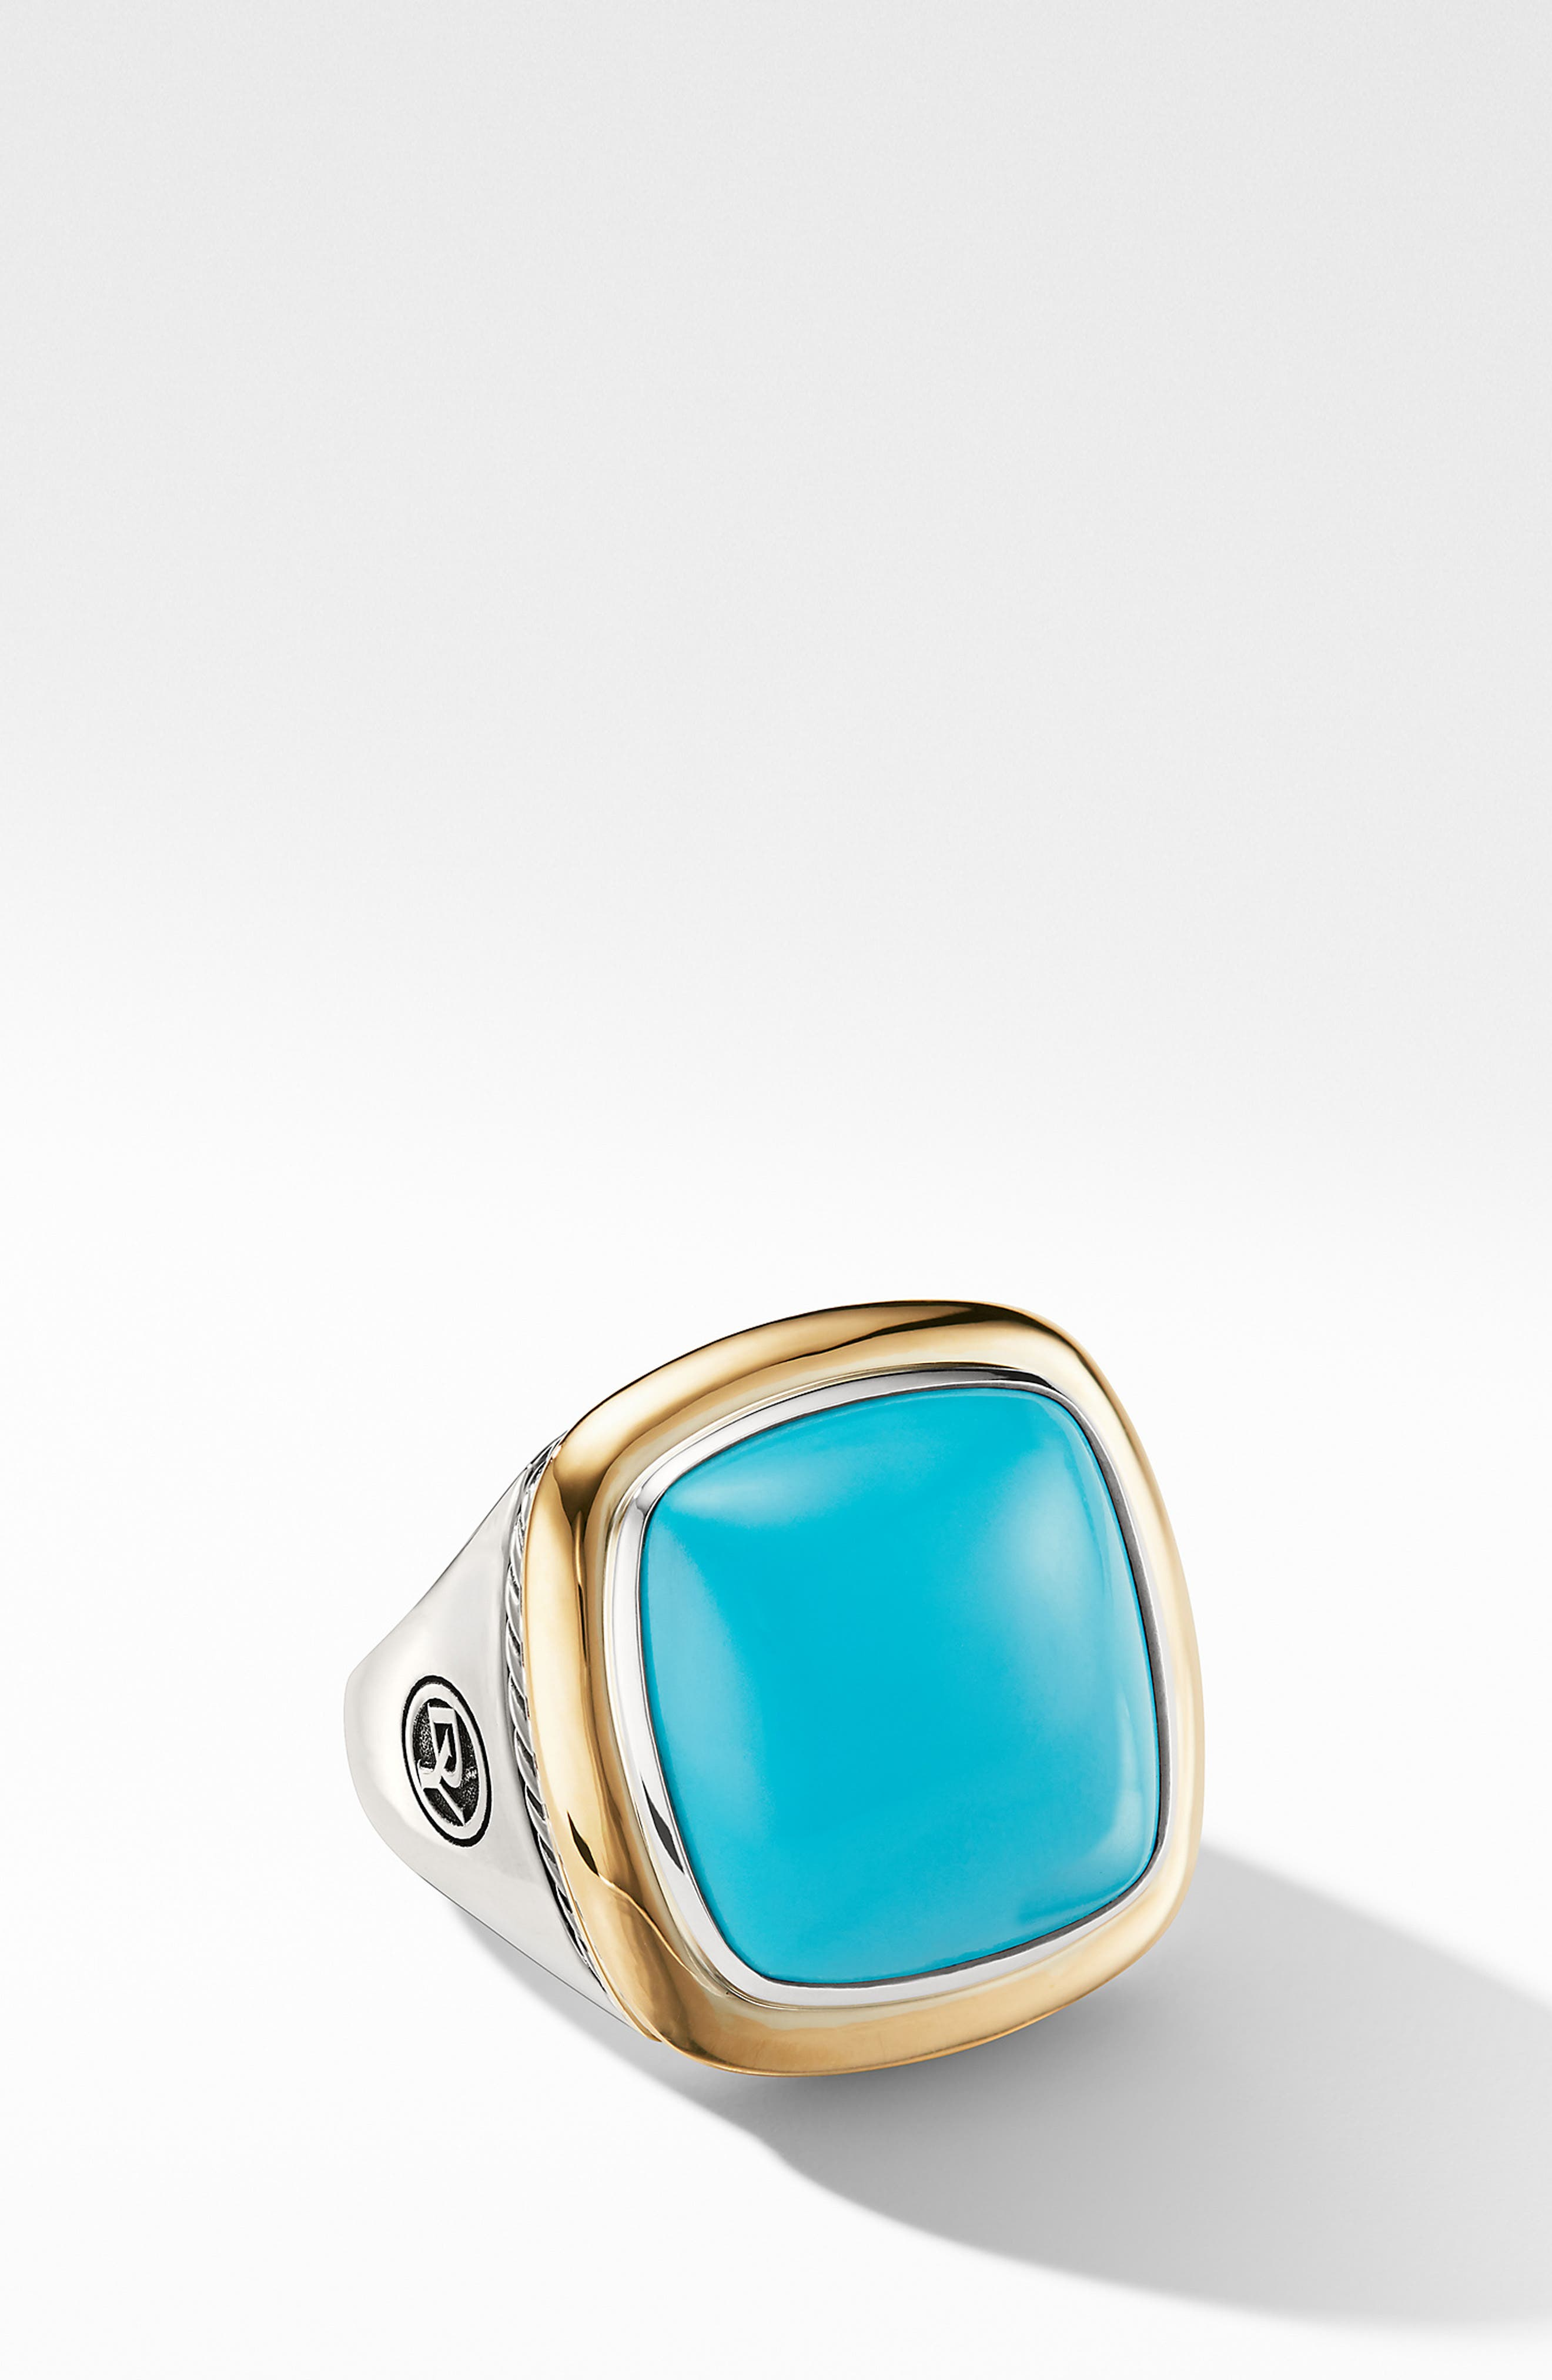 Albion<sup>®</sup> Statement Ring with 18K Gold and Champagne Citrine or Reconstituted Turquoise,                             Main thumbnail 1, color,                             RECONSTITUTED TURQUOISE